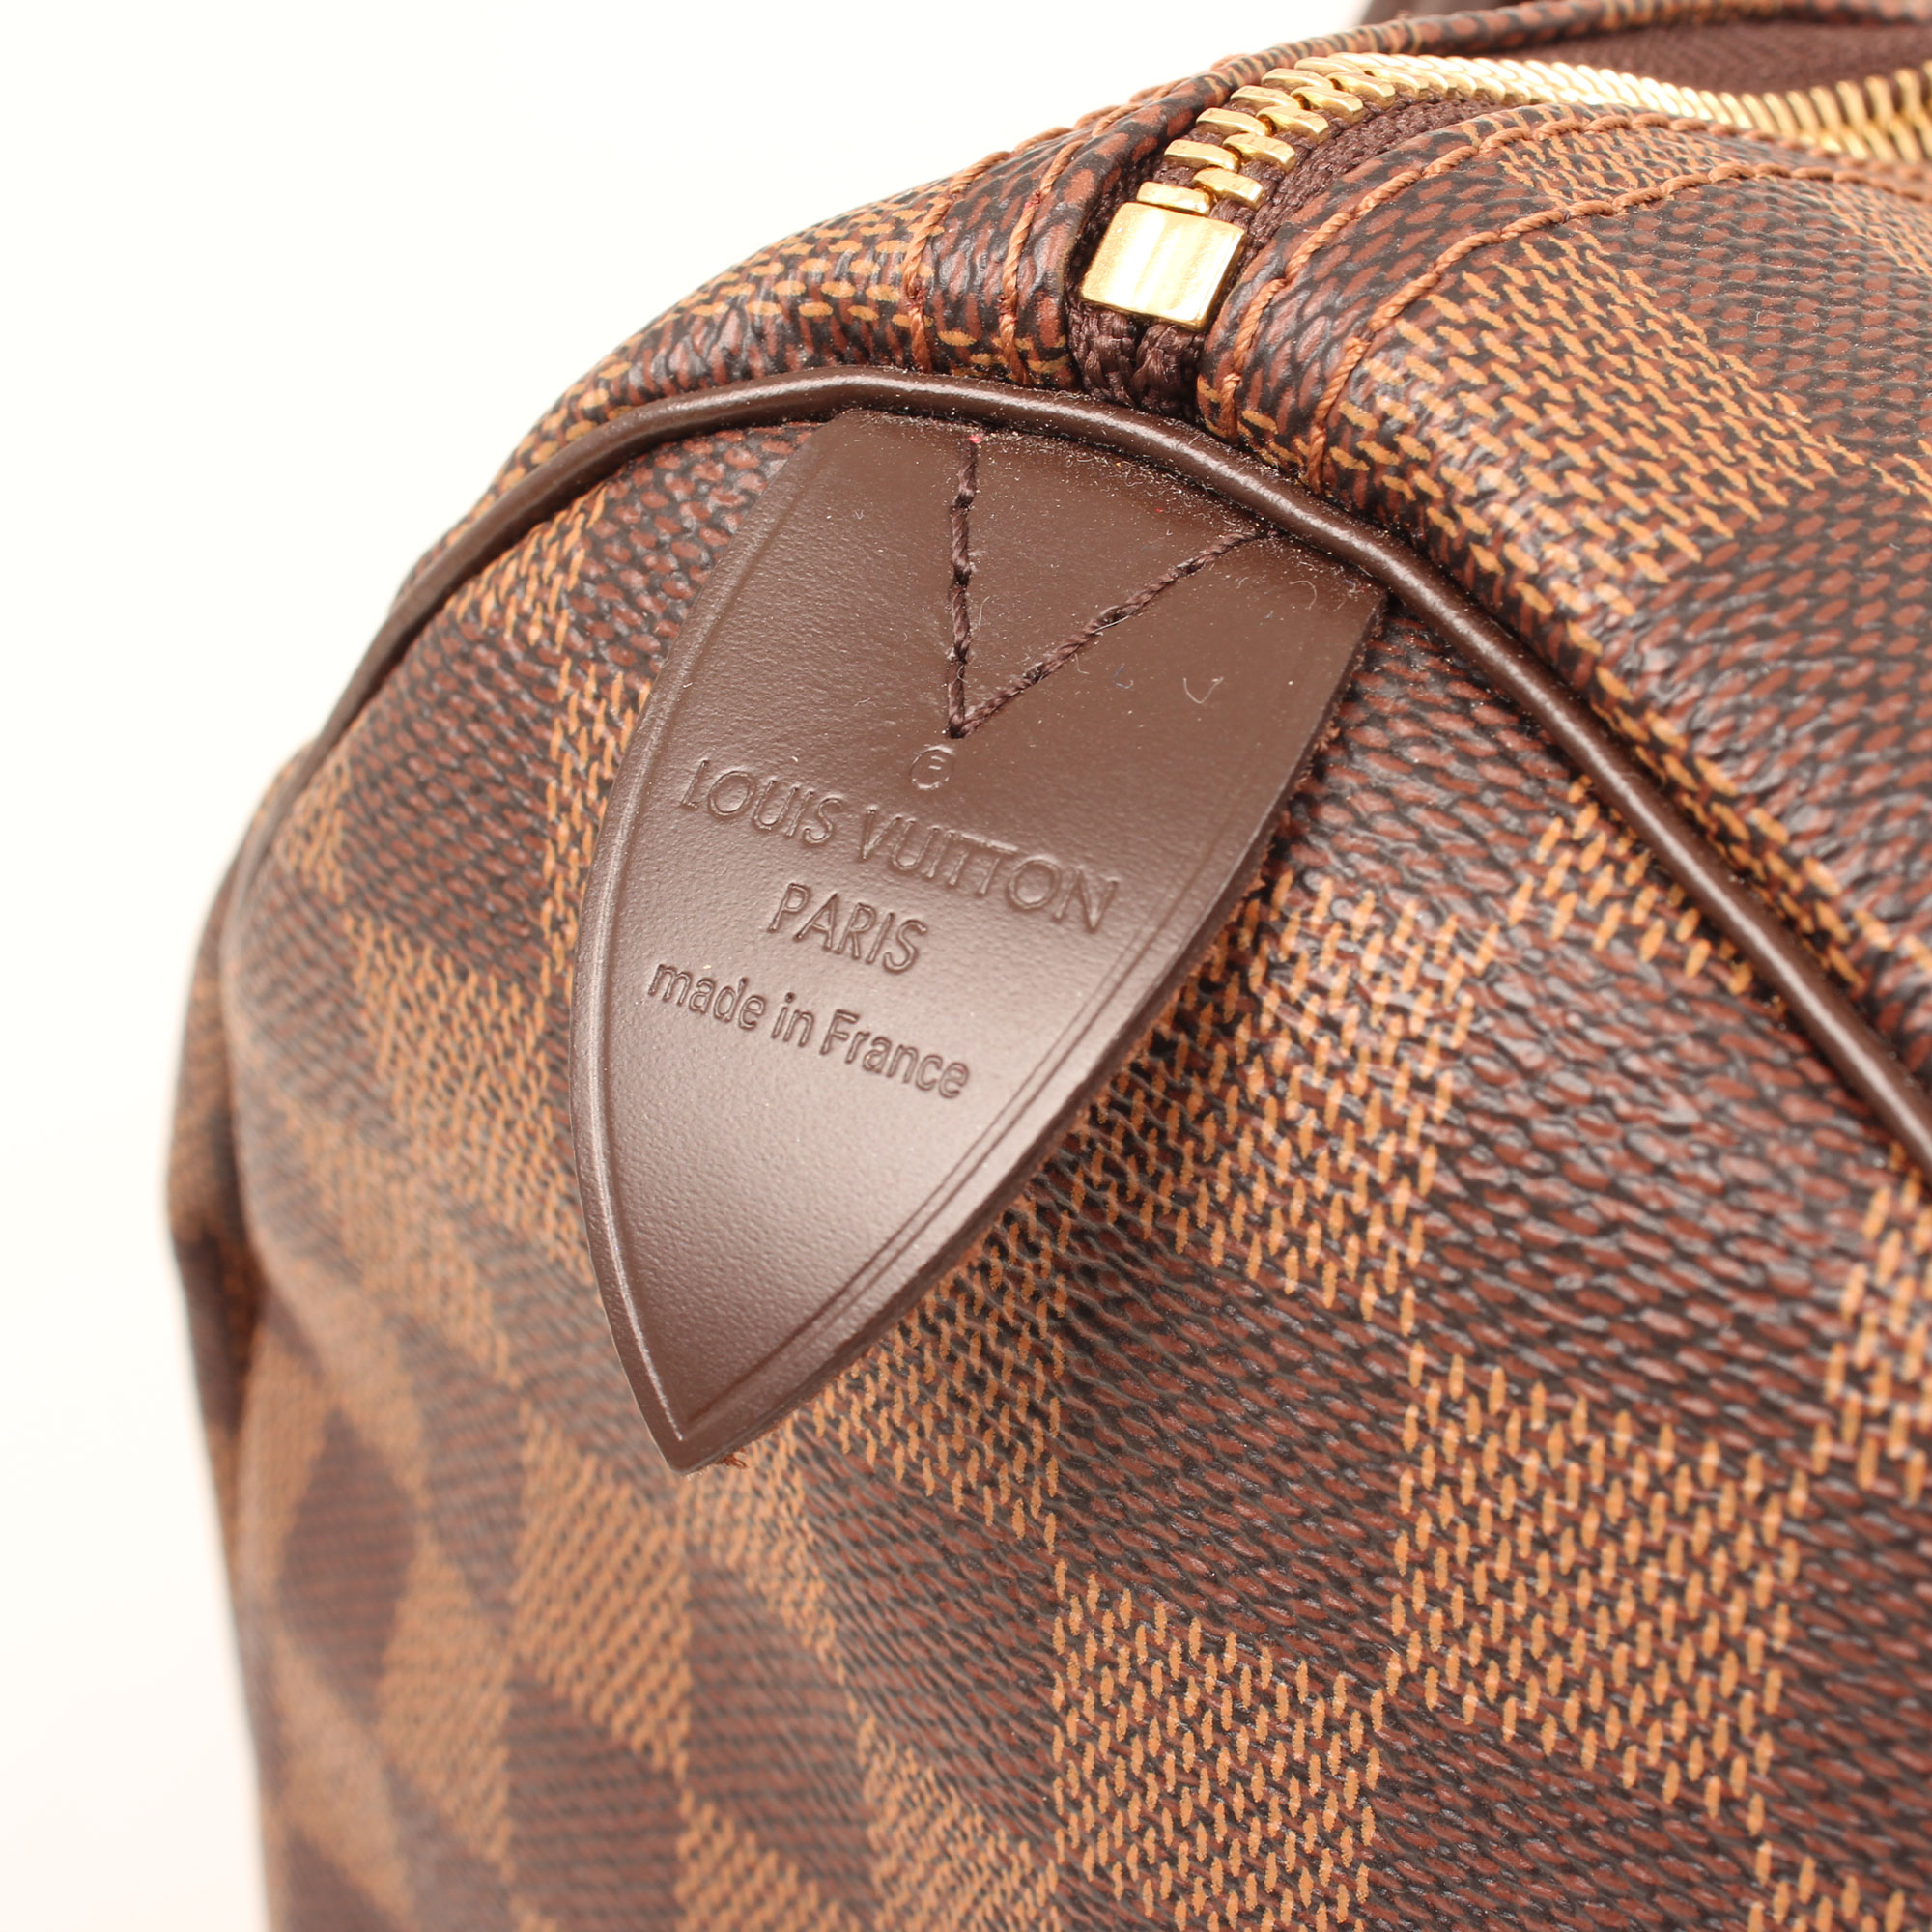 bag-louis-vuitton-speedy-35-damier-ebene-brand